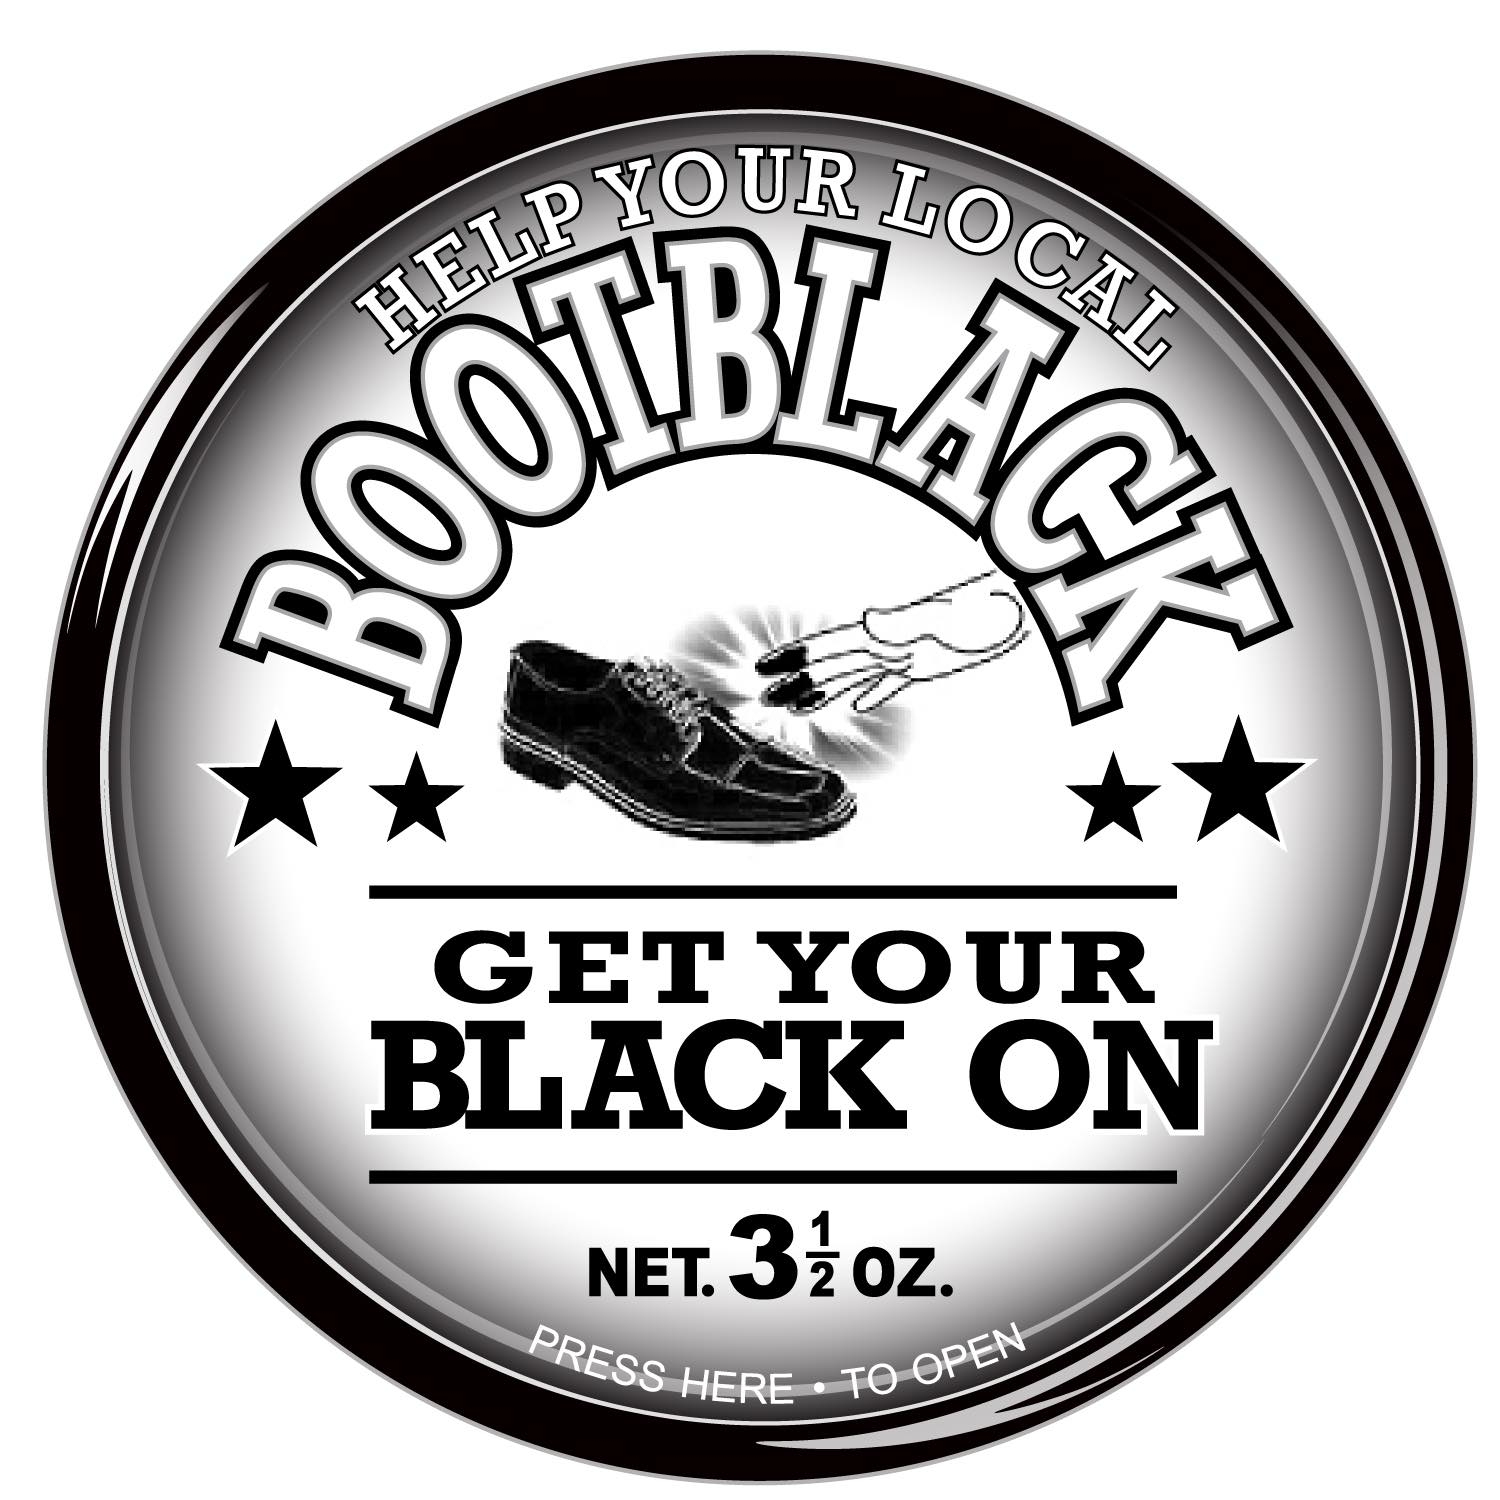 Get Your Black On!